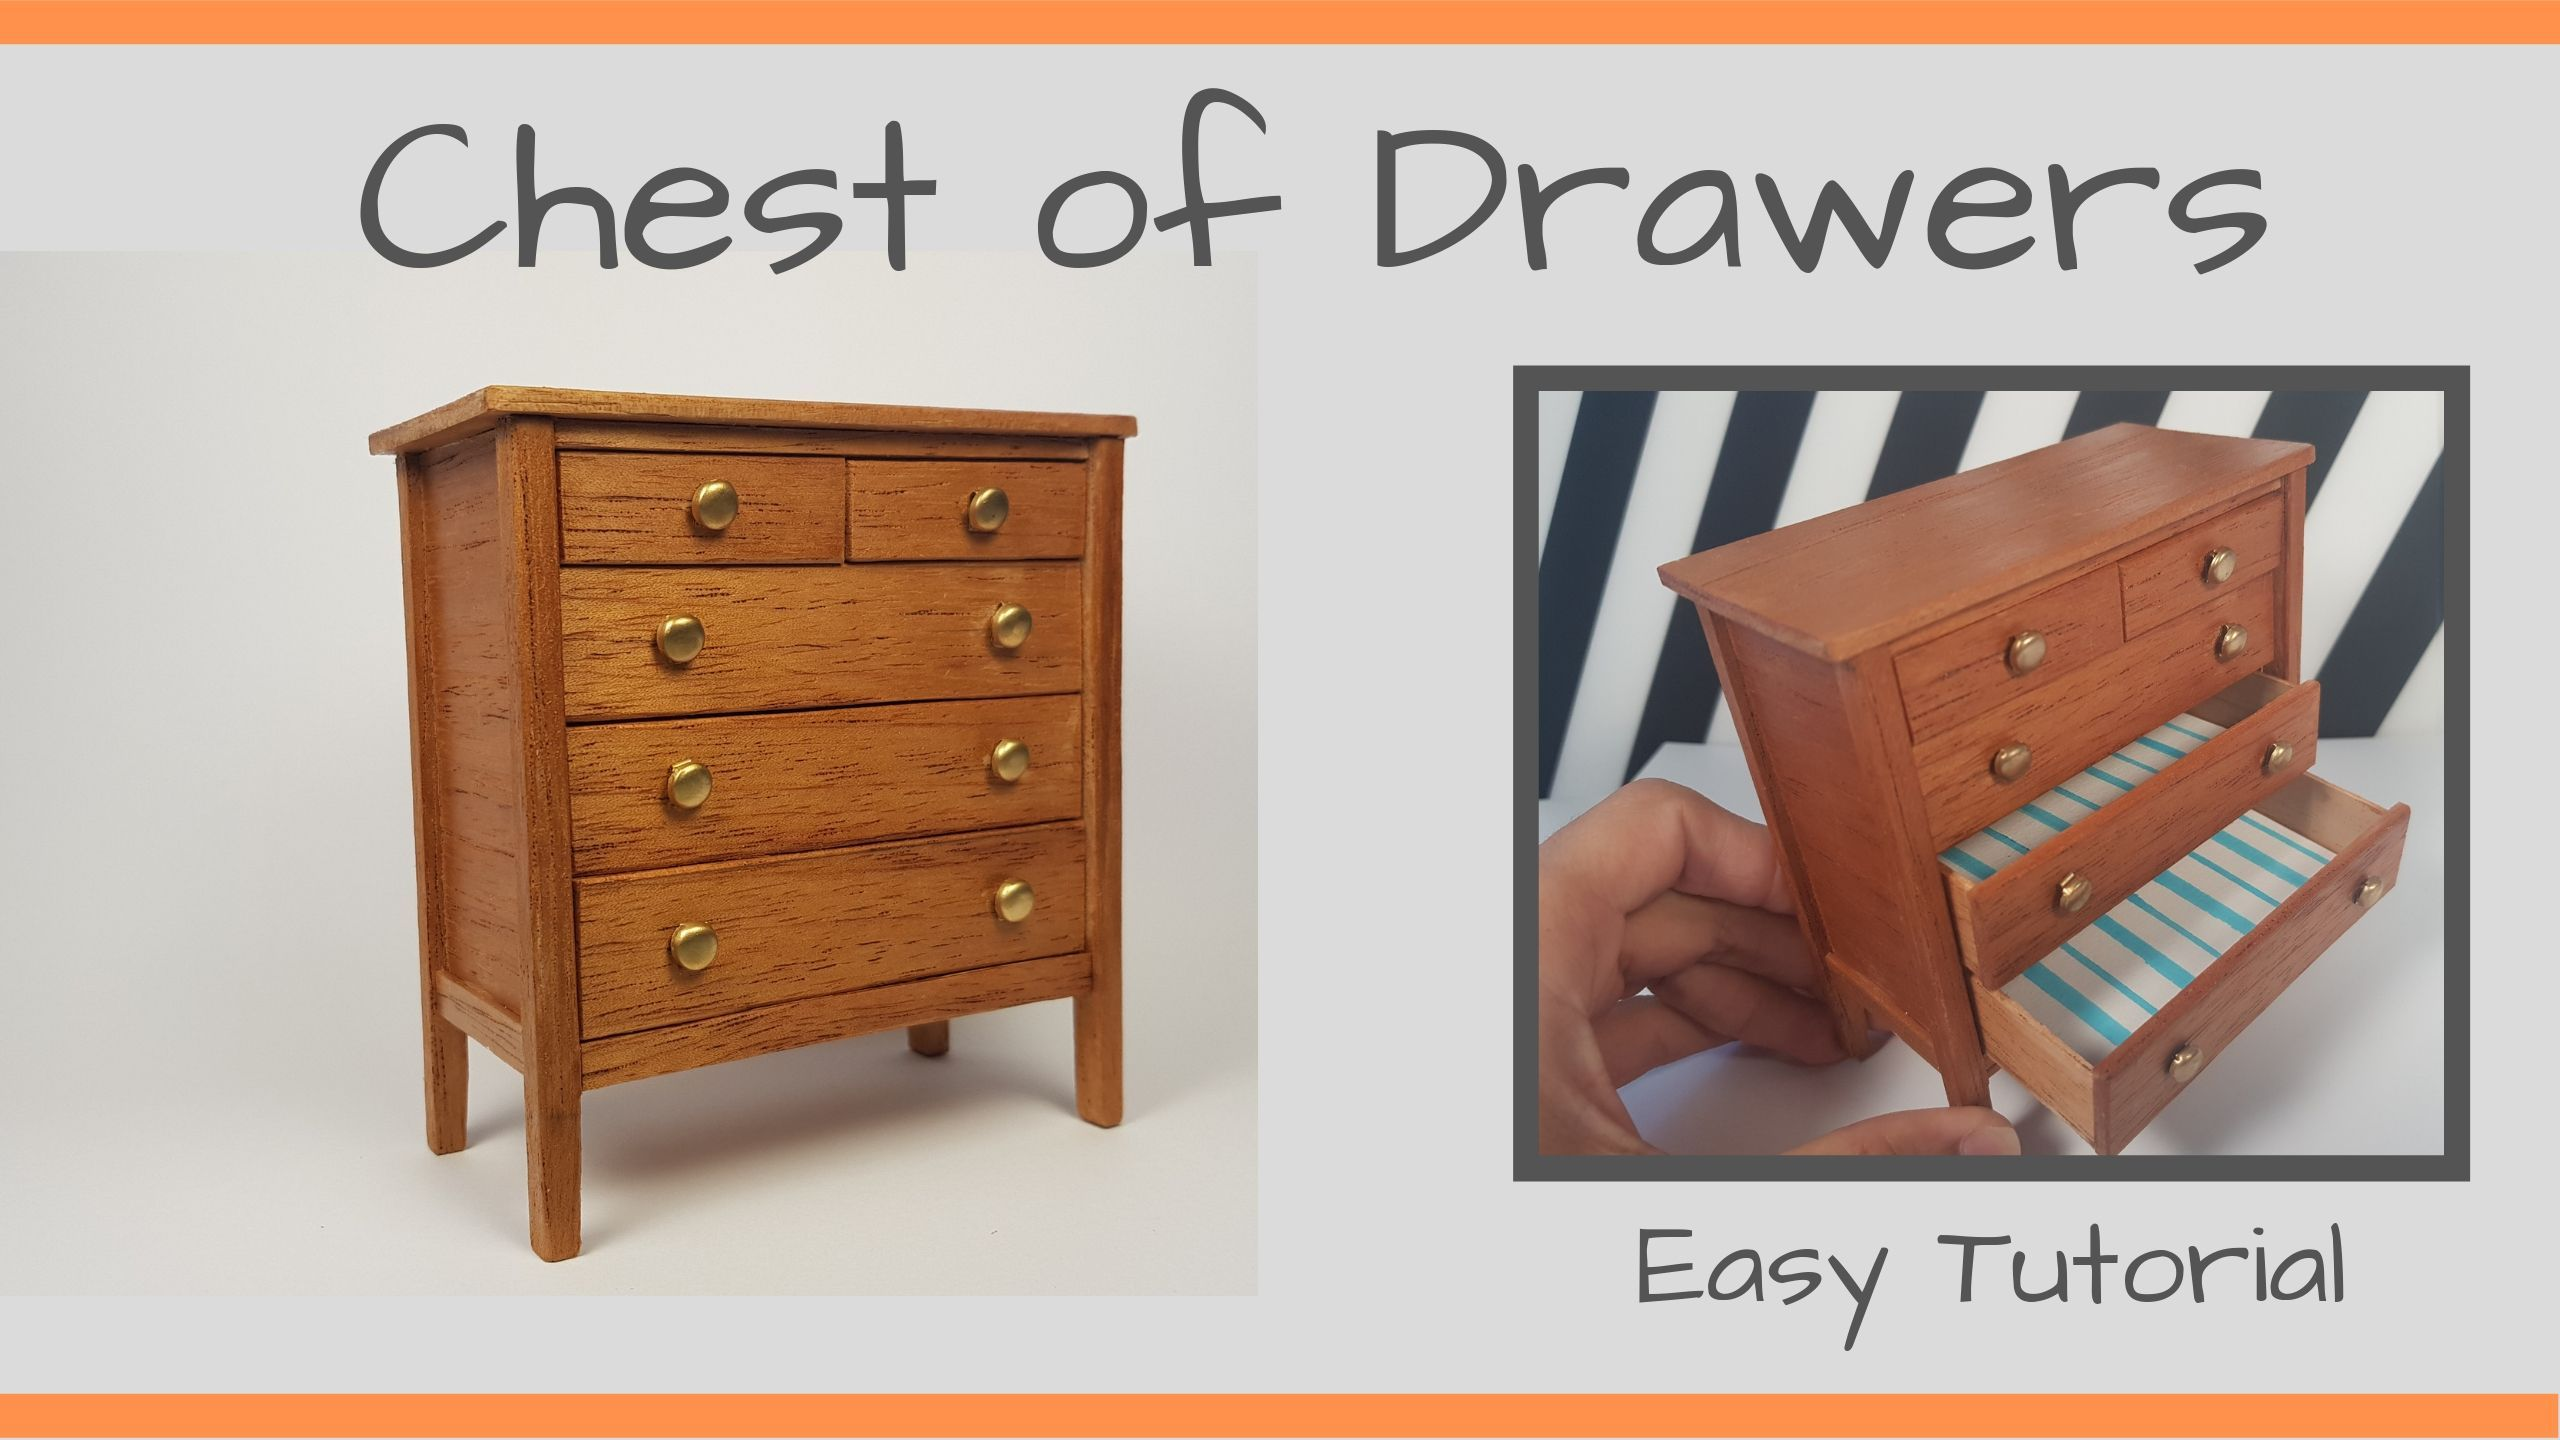 Miniature (Chest of Drawers)